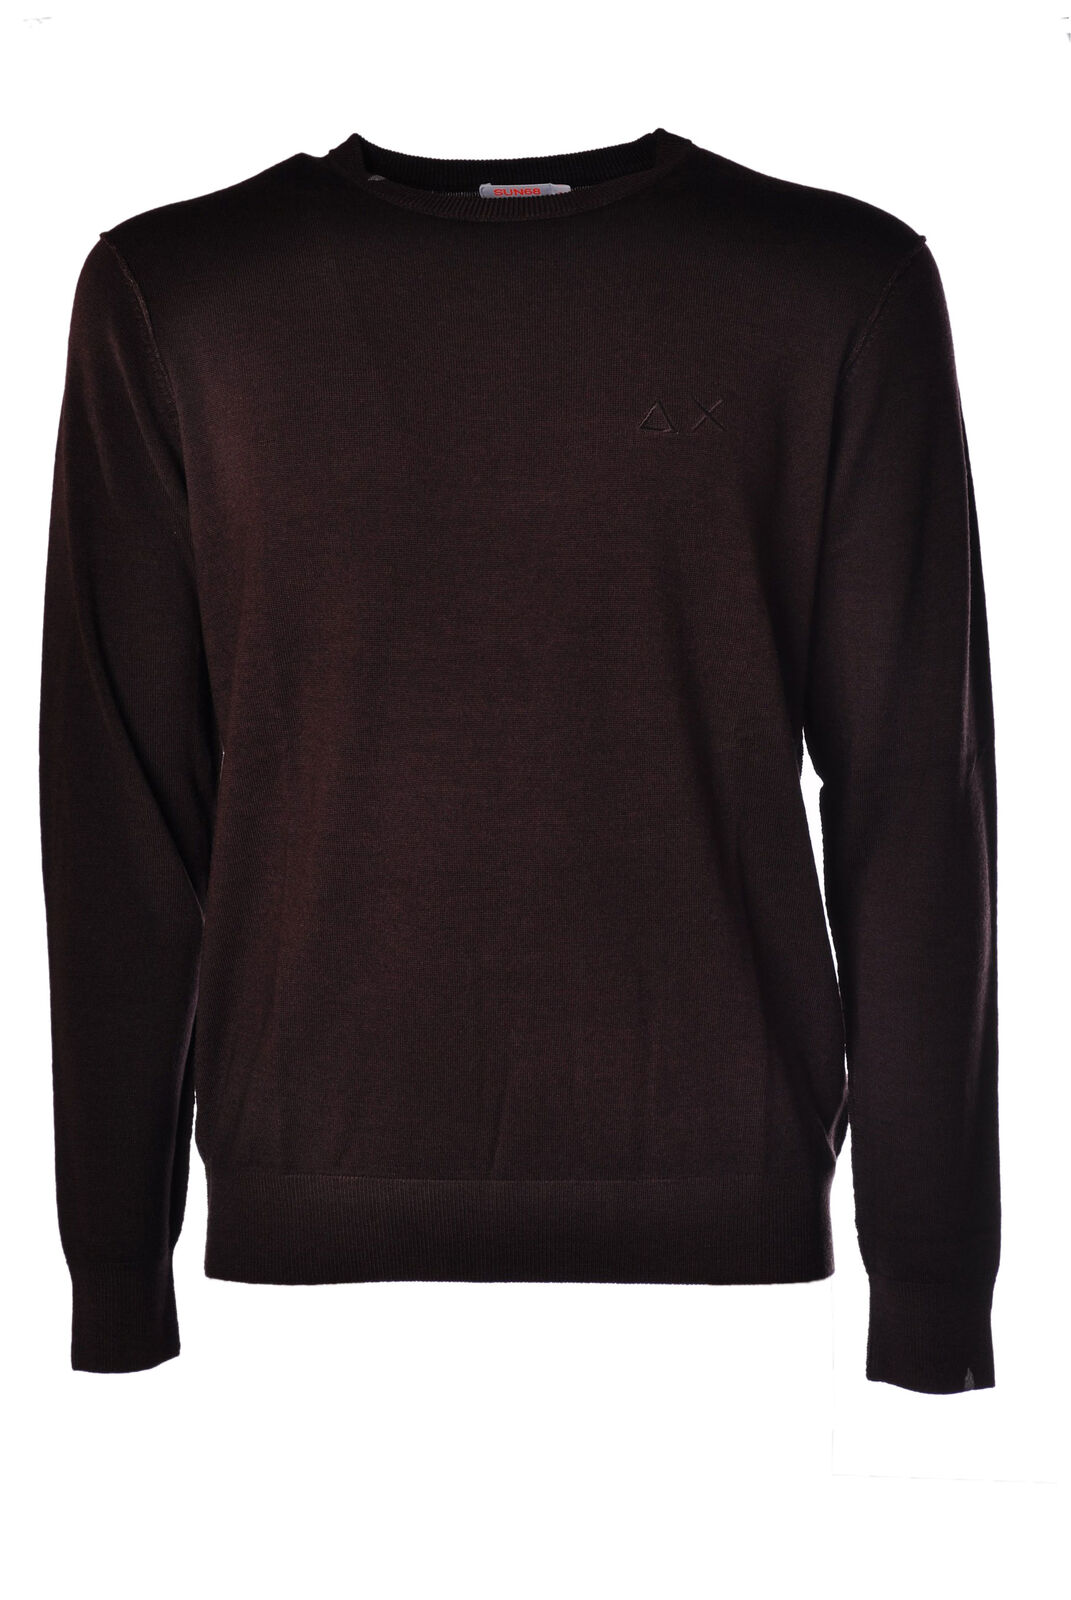 Sun 68 - Knitwear-Sweaters - Man - Brown - 898518C185003